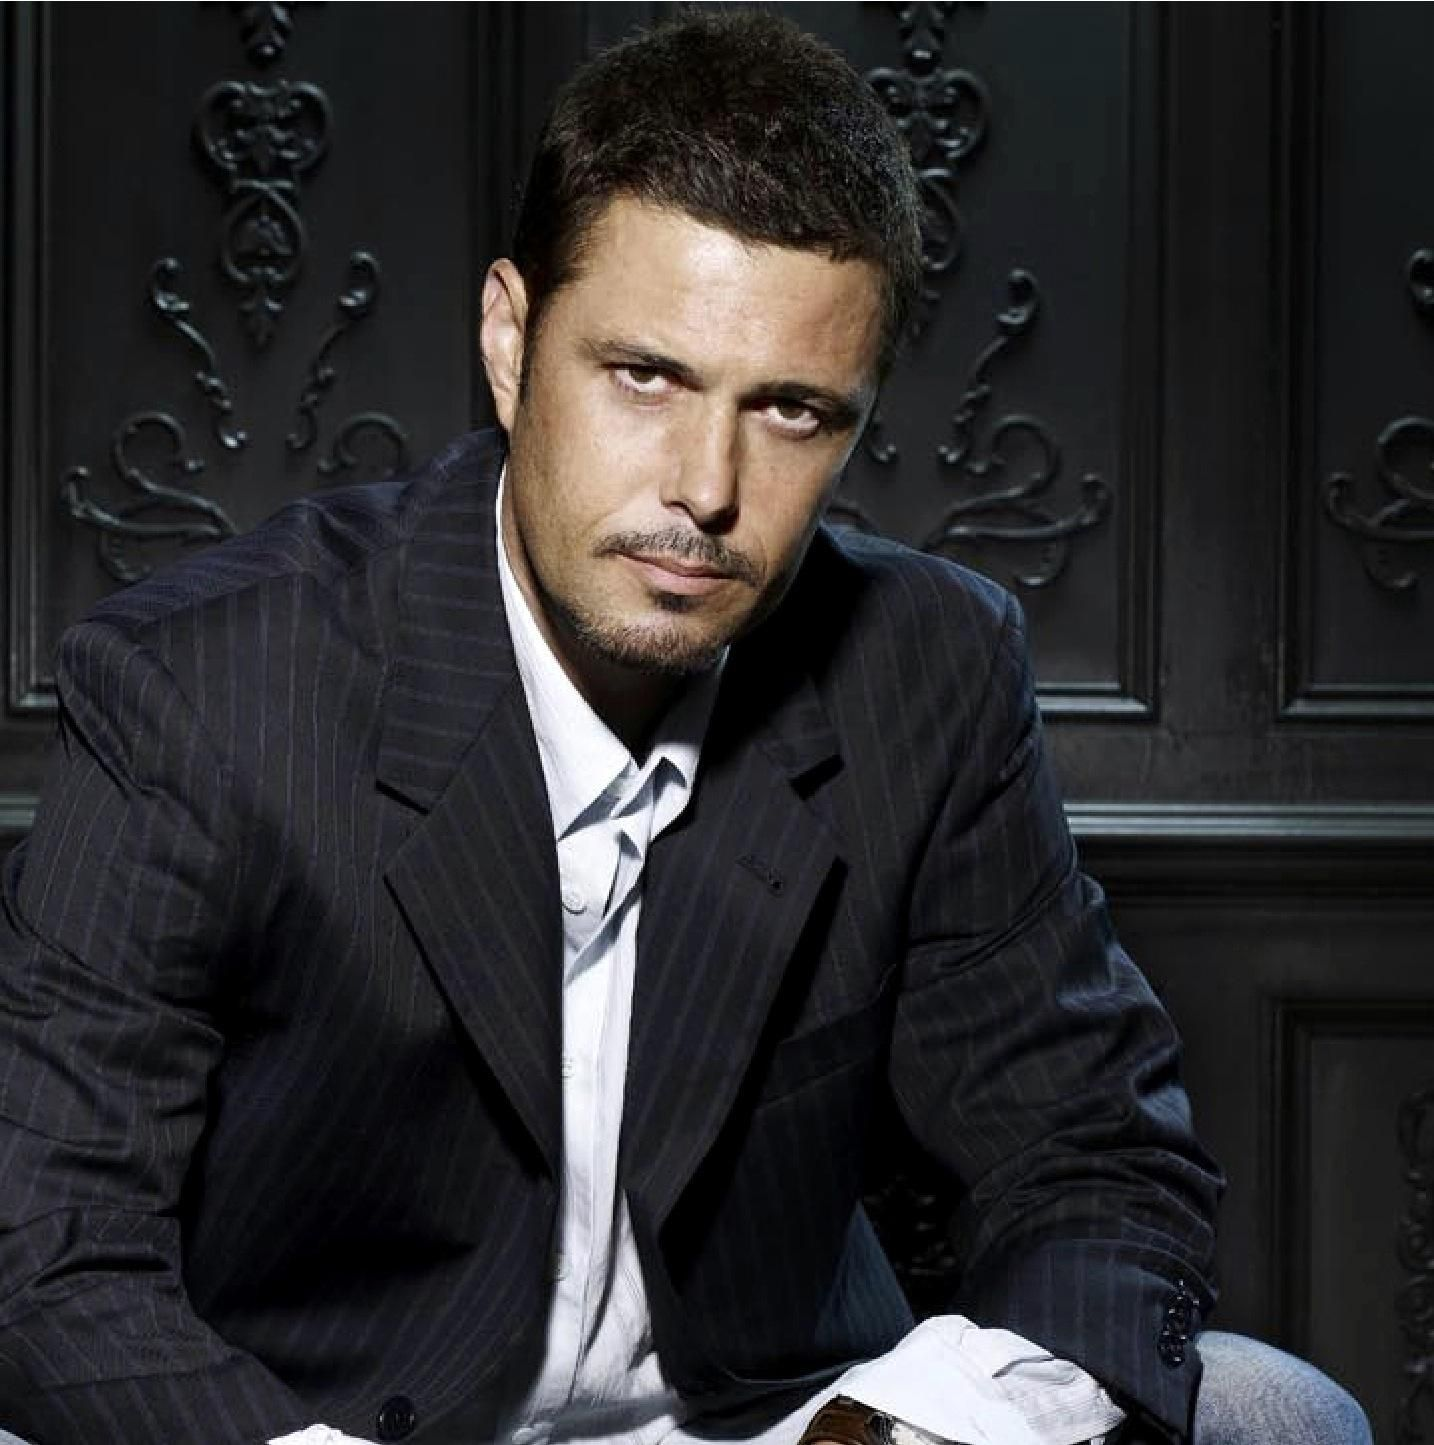 carlos bernard net worth